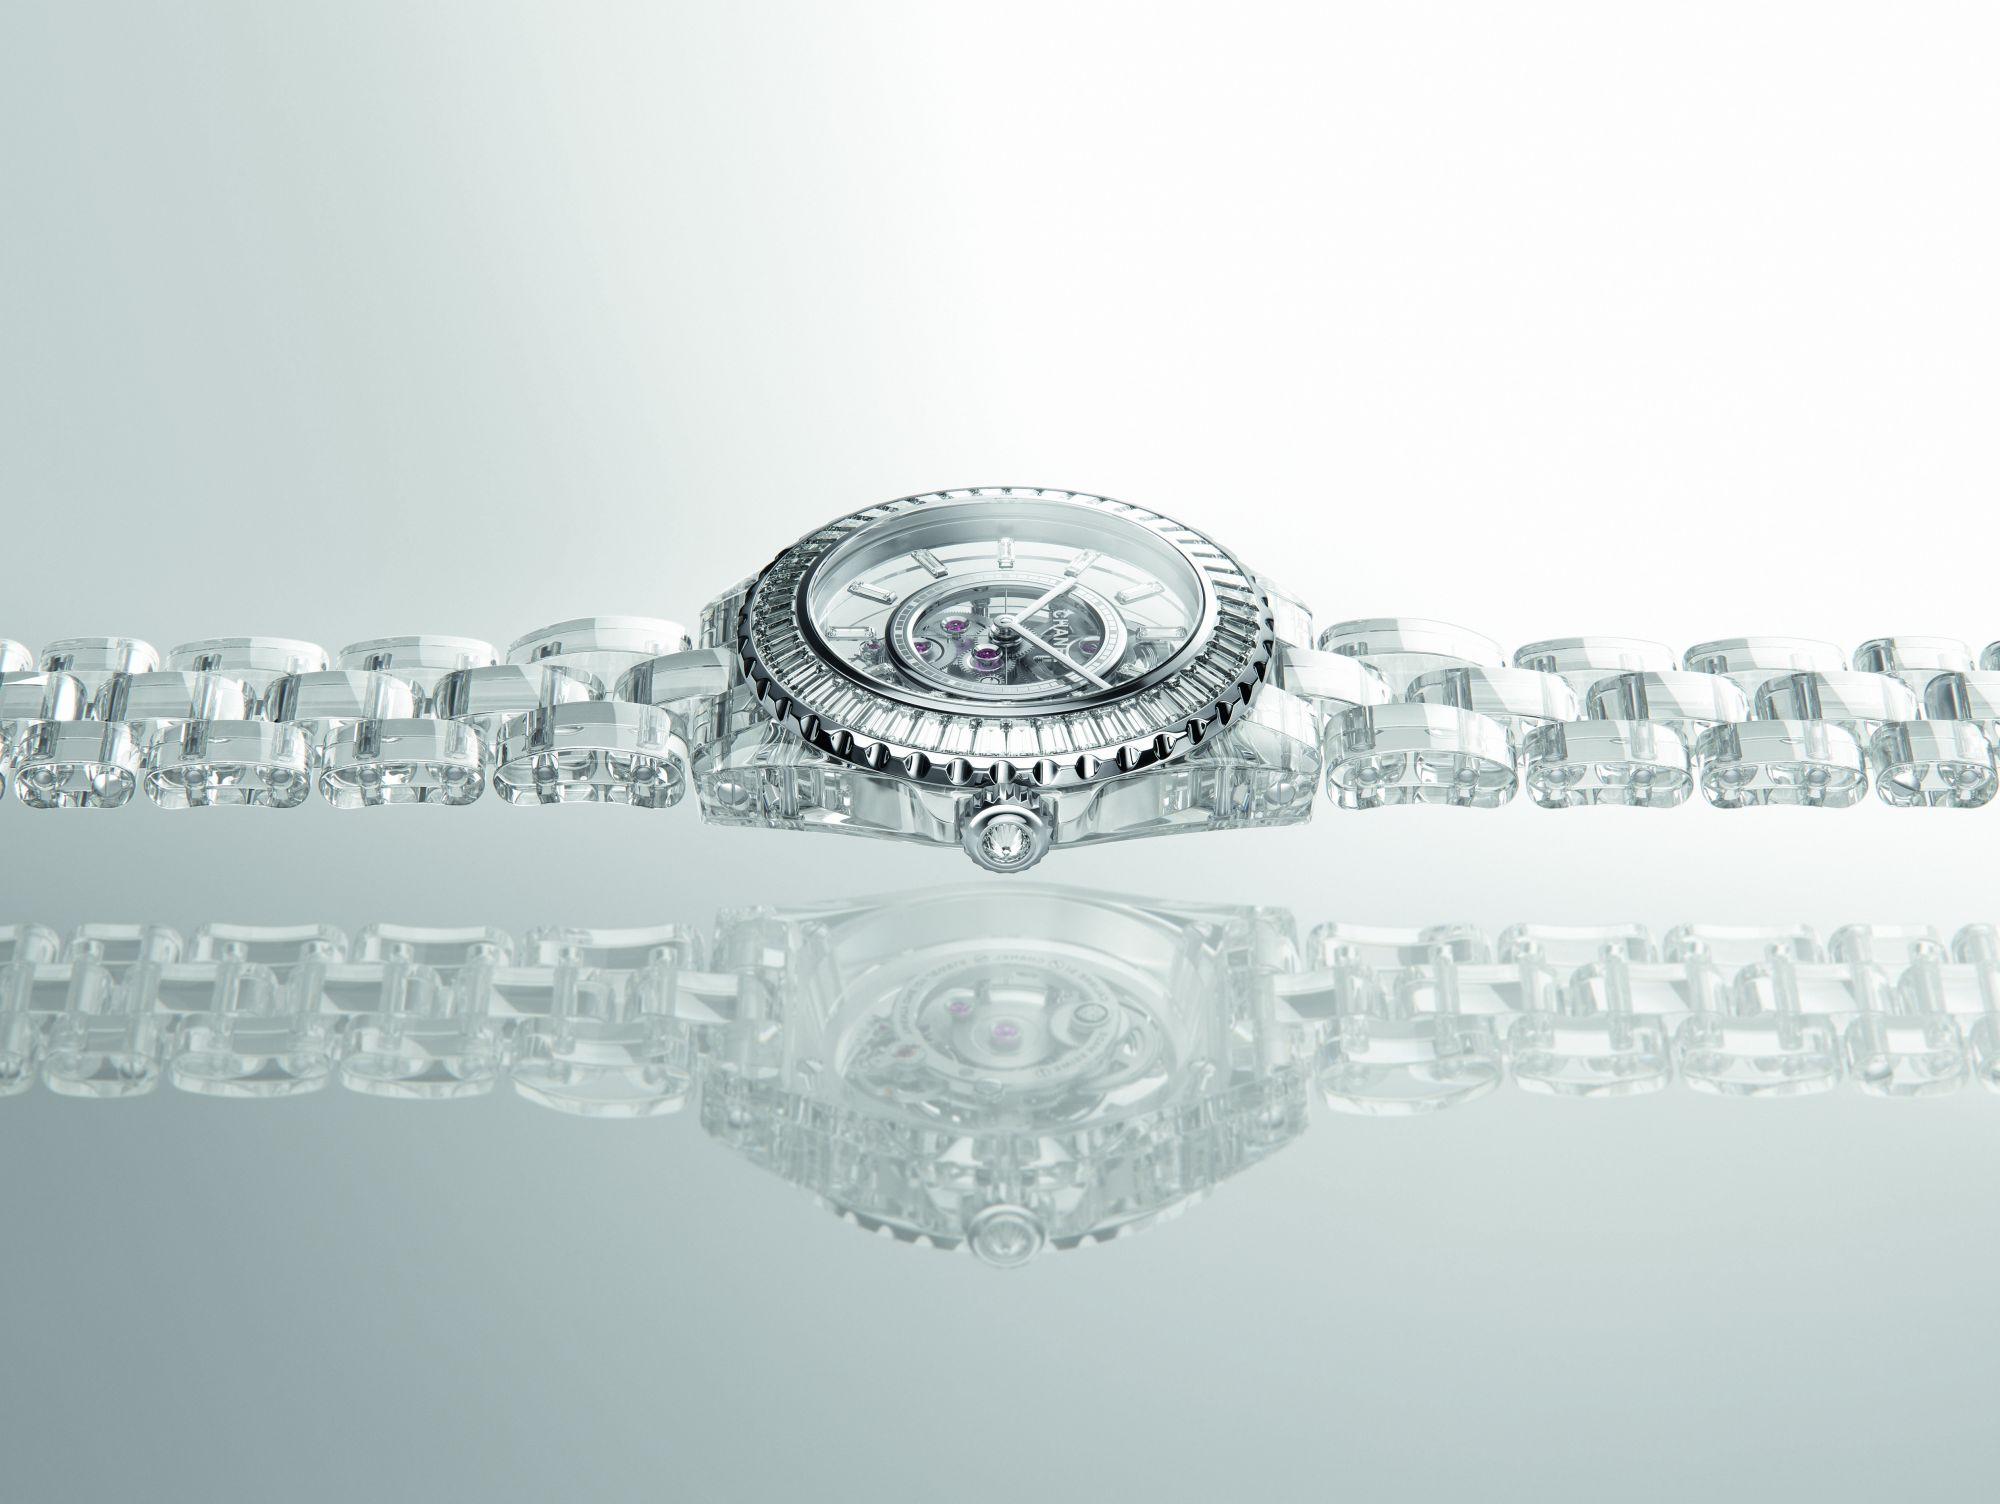 Chanel's J12 X-Ray Marks The Spot